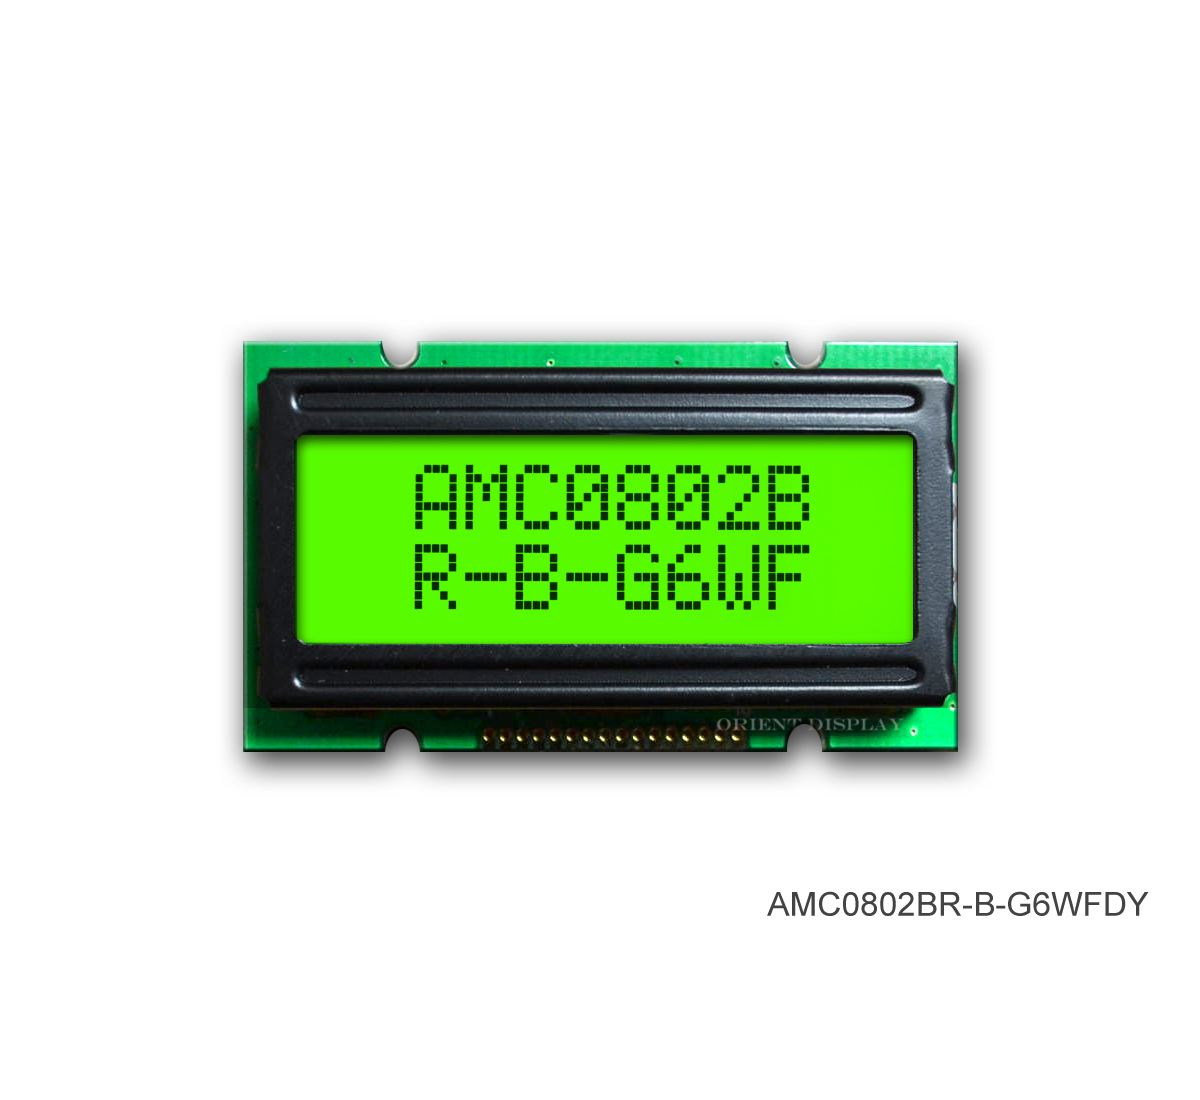 AMC0802BR-B-G6WFDY (8x2 Character LCD Module)